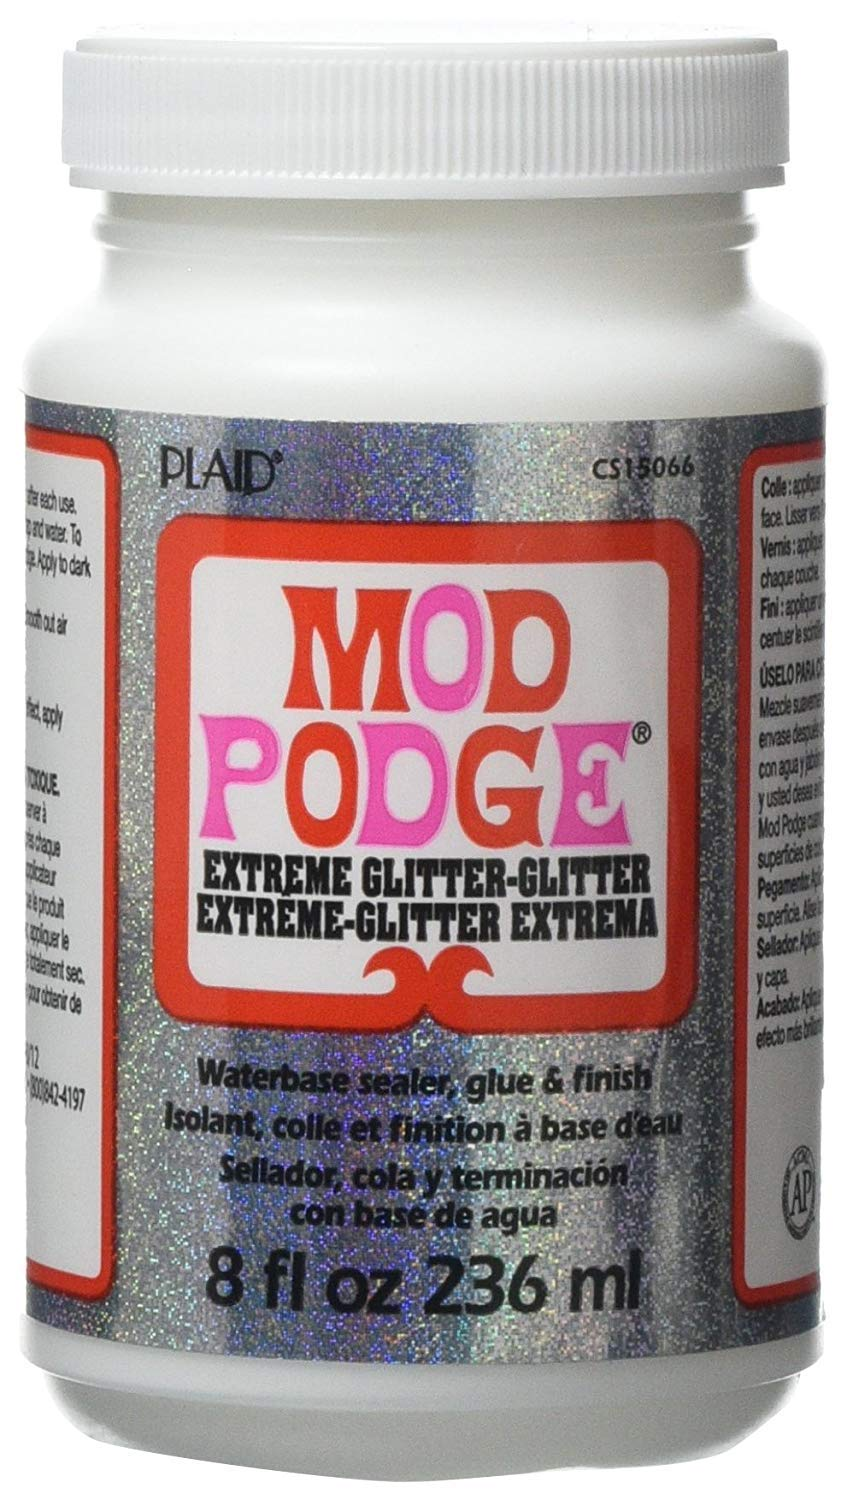 Mod Podge CS15066 Extreme Glitter 8 Oz (2 Pack)